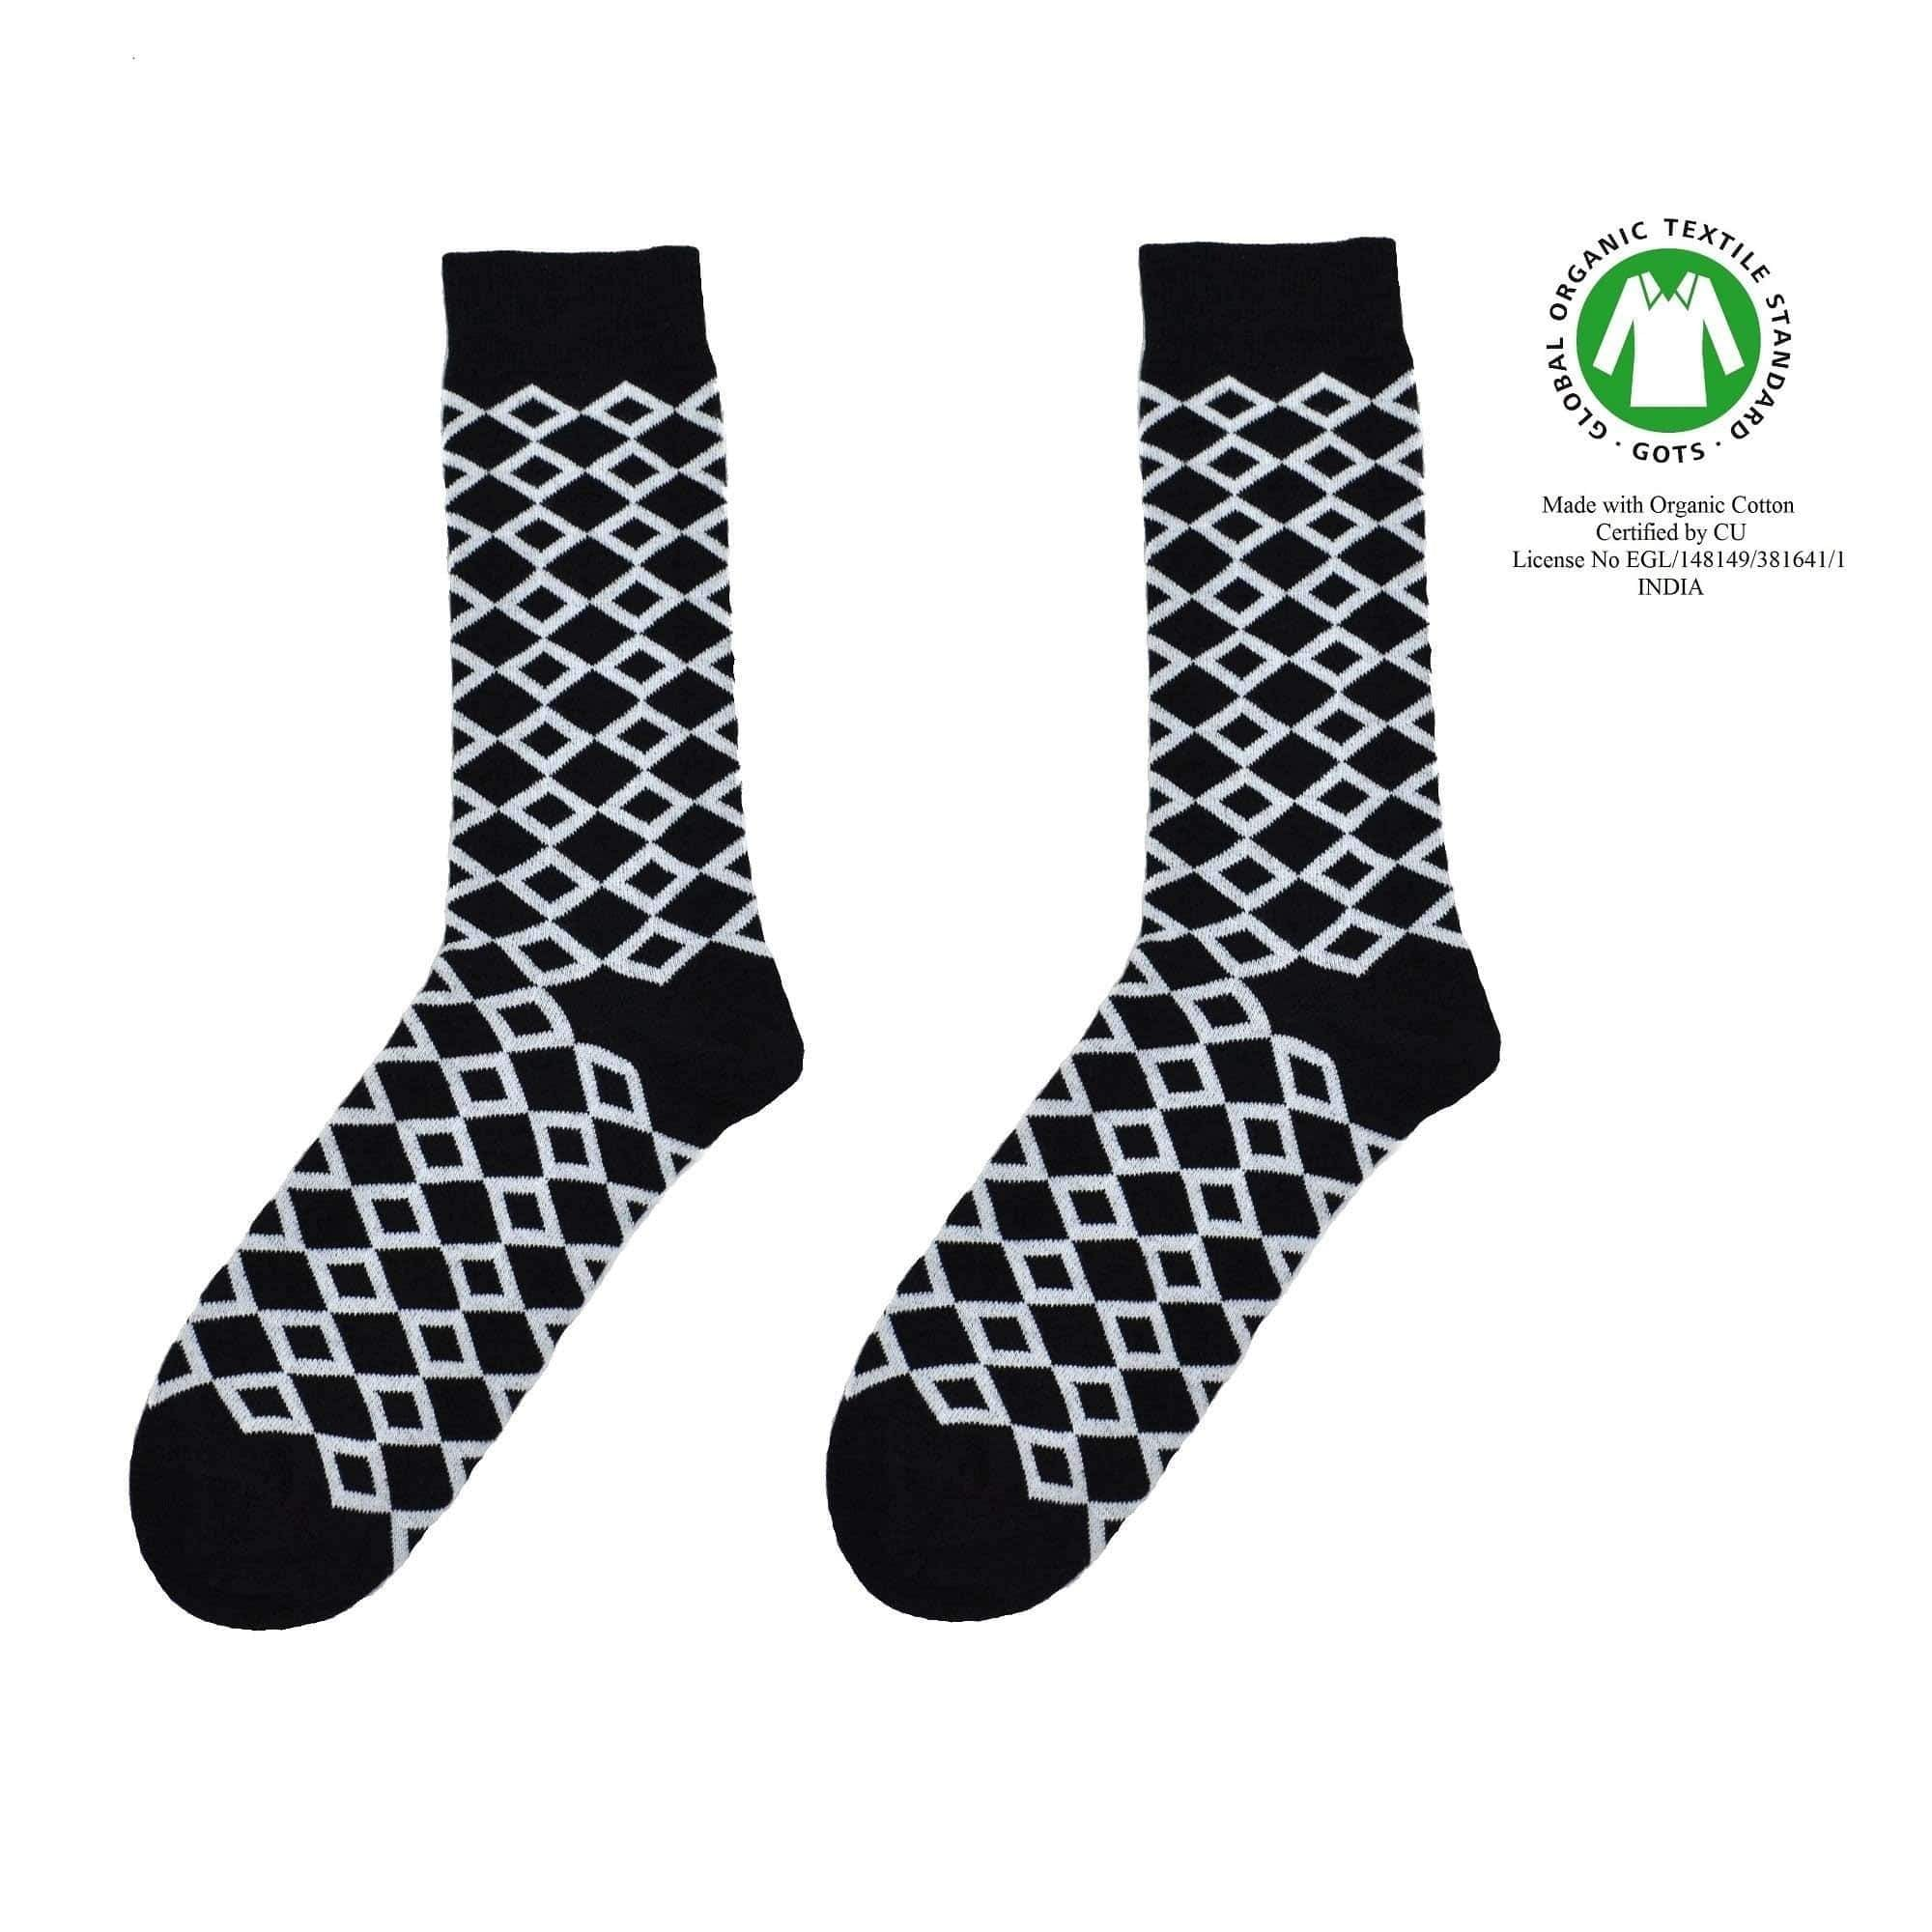 Organic Socks of Sweden sock Nyberg Socks. Organic Cotton. sustainable fashion ethical fashion